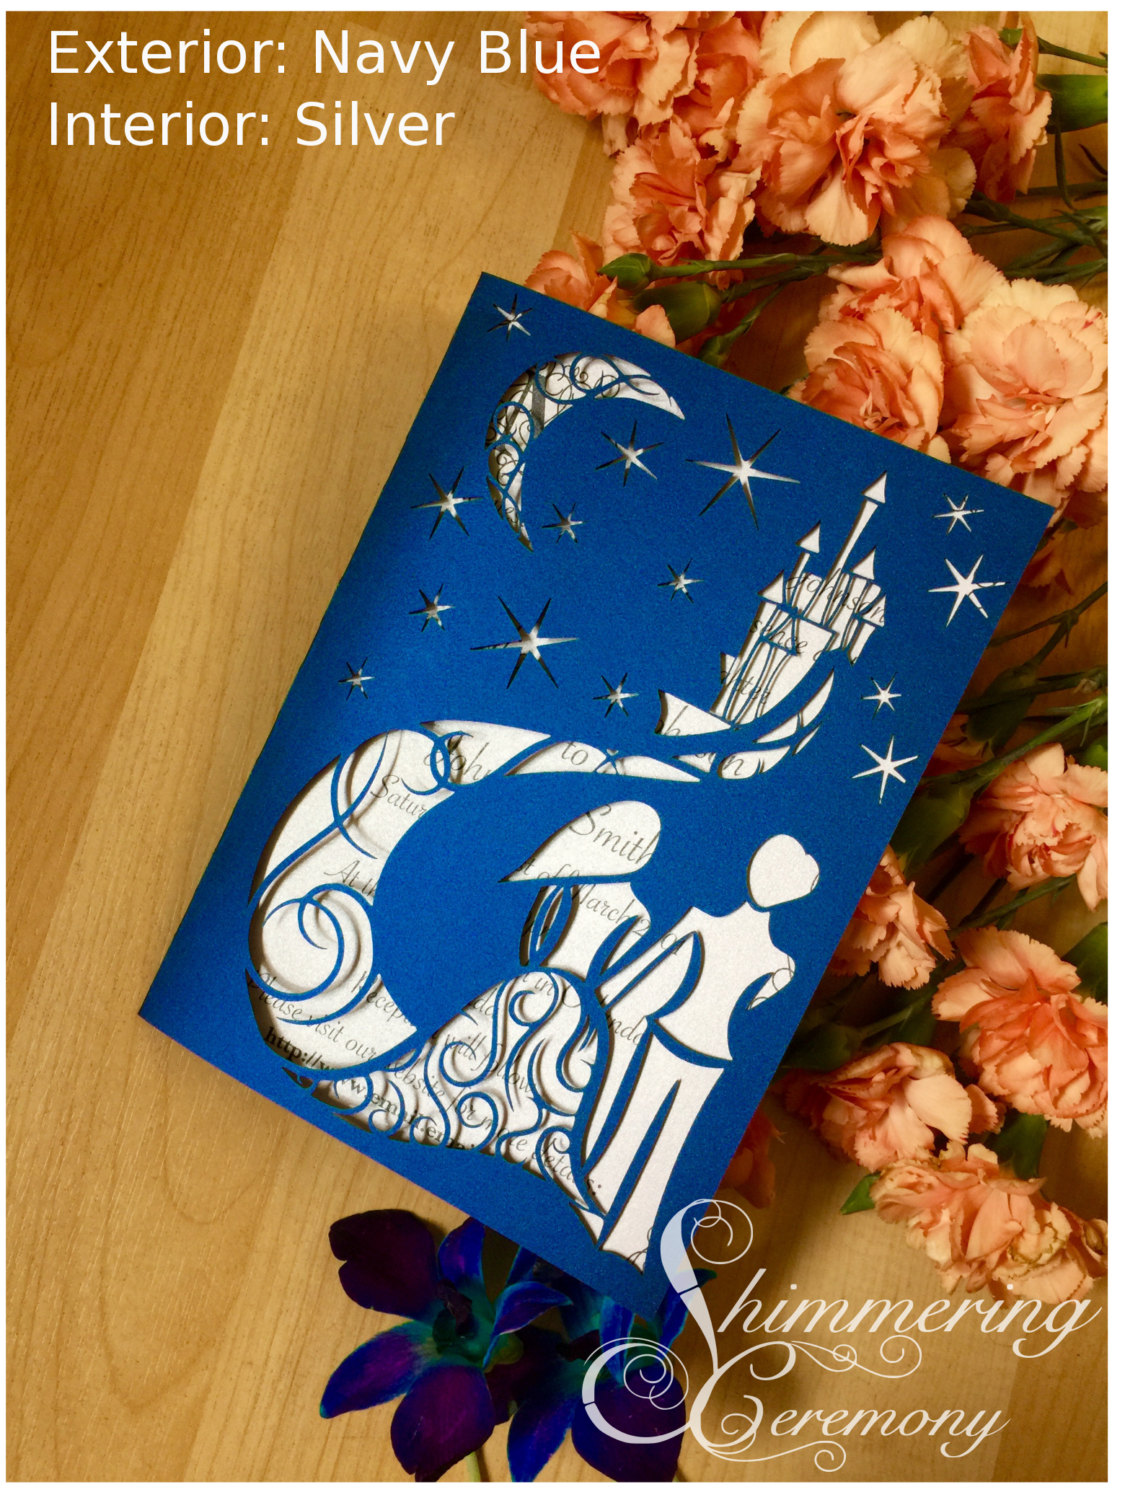 Fairytale Starry Night Laser Cut Wedding Invitation Blue Night With Moon  Bride And Groom Fairy Tale